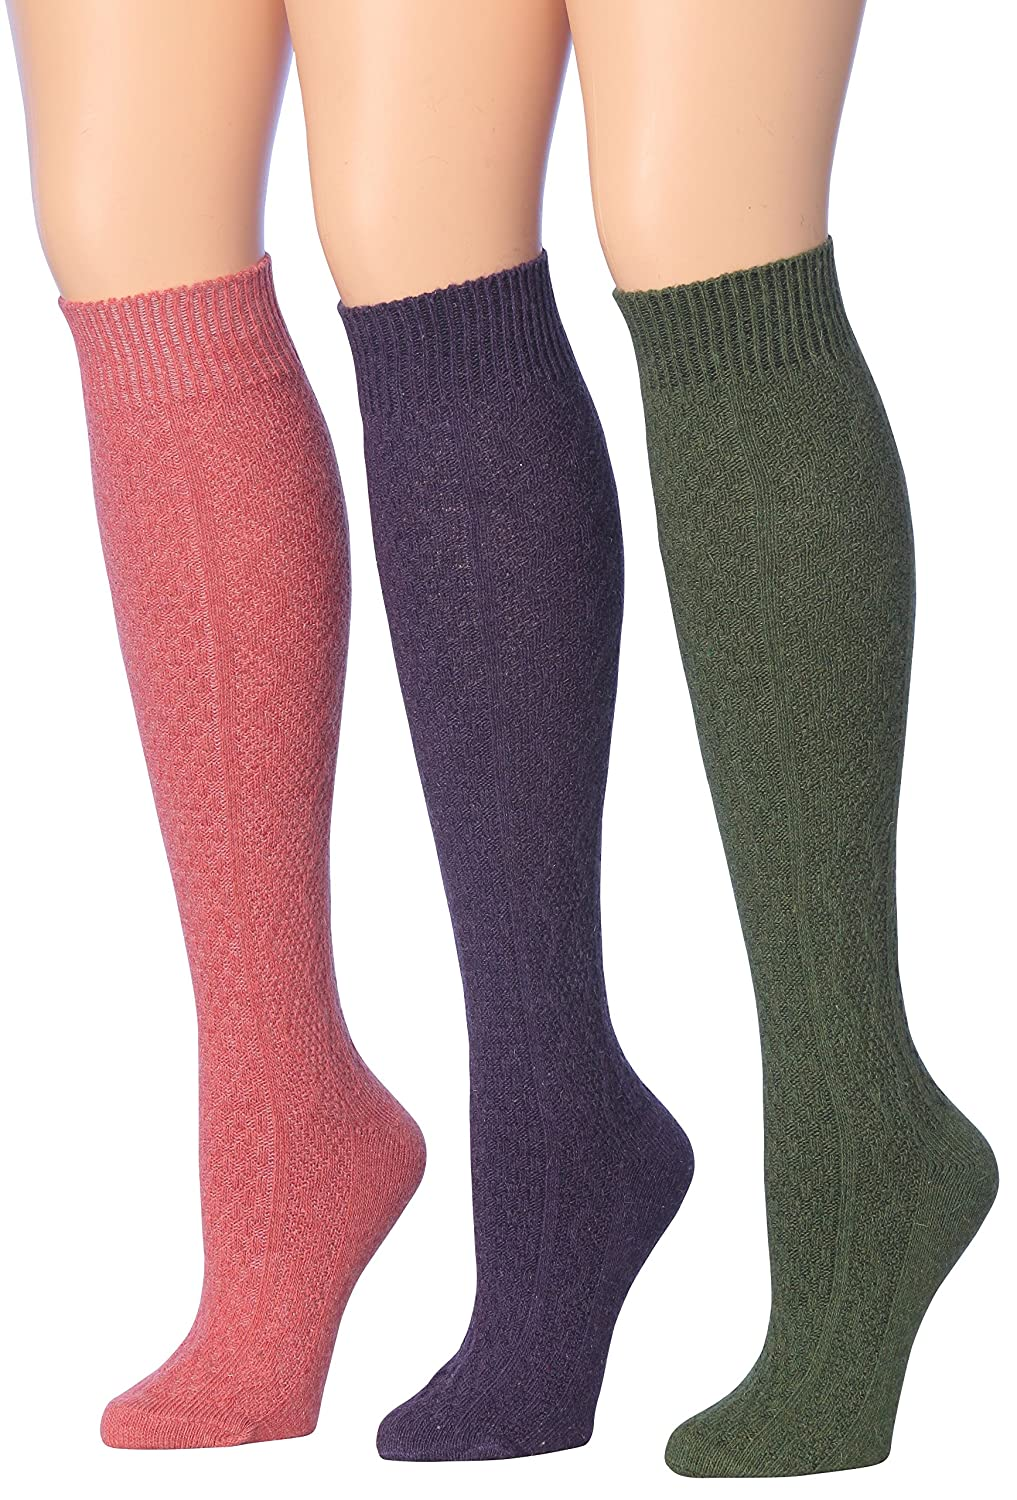 6fcbf8ee0 ... Mid-Calf High Wool-Blend Boot Socks. 50%OFF Tipi Toe Women s 3 Or 6- Pairs Ragg Marled Ribbed Mid-